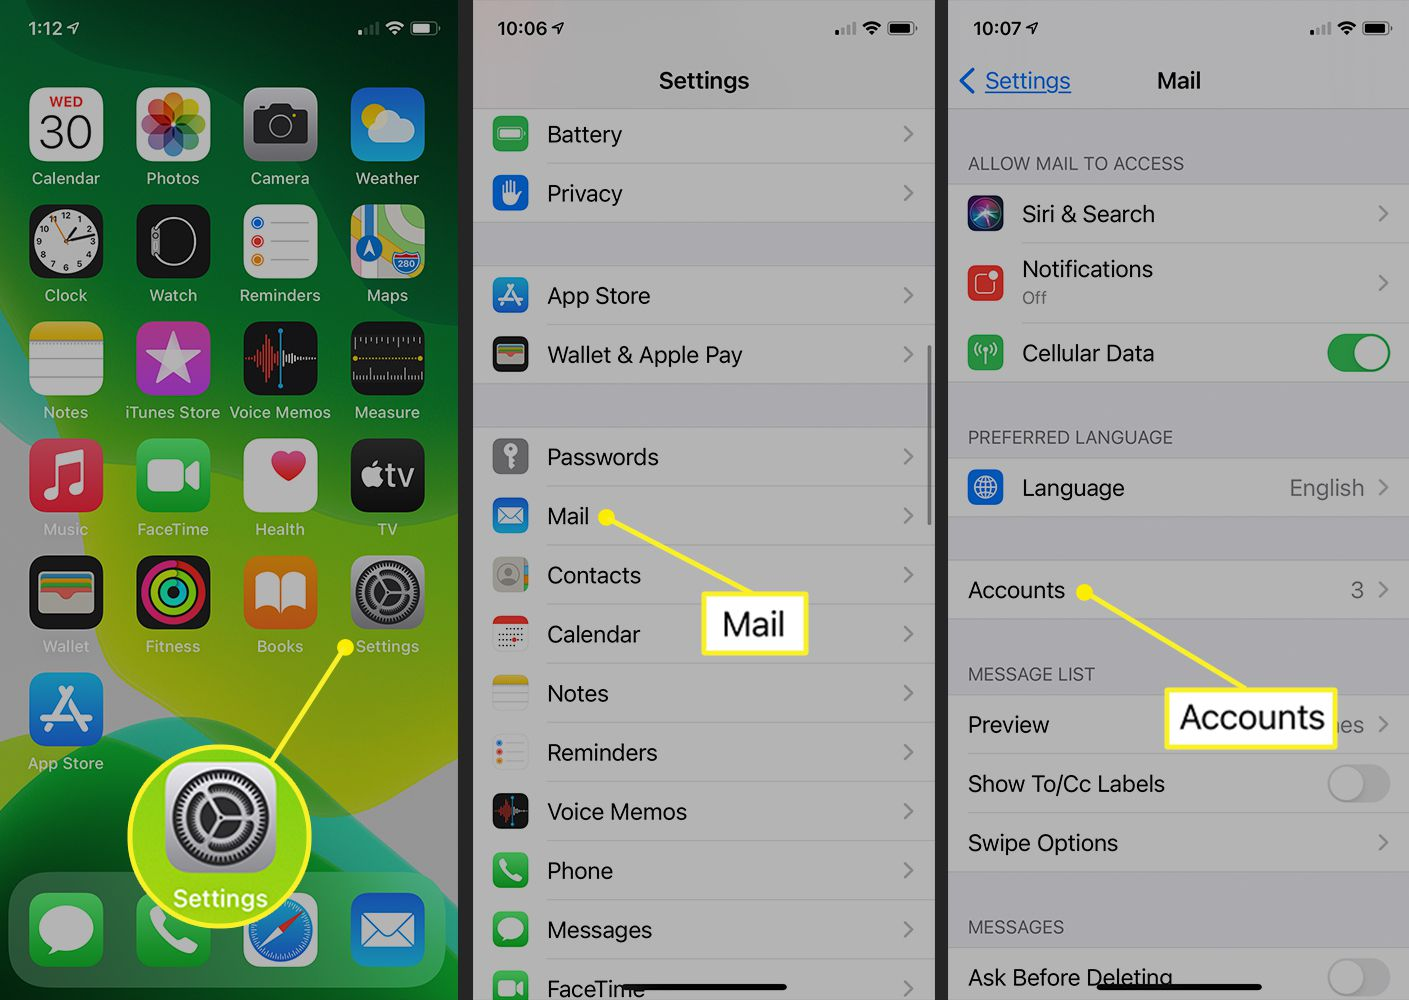 iPhone showing path to mail accounts in iOS 14